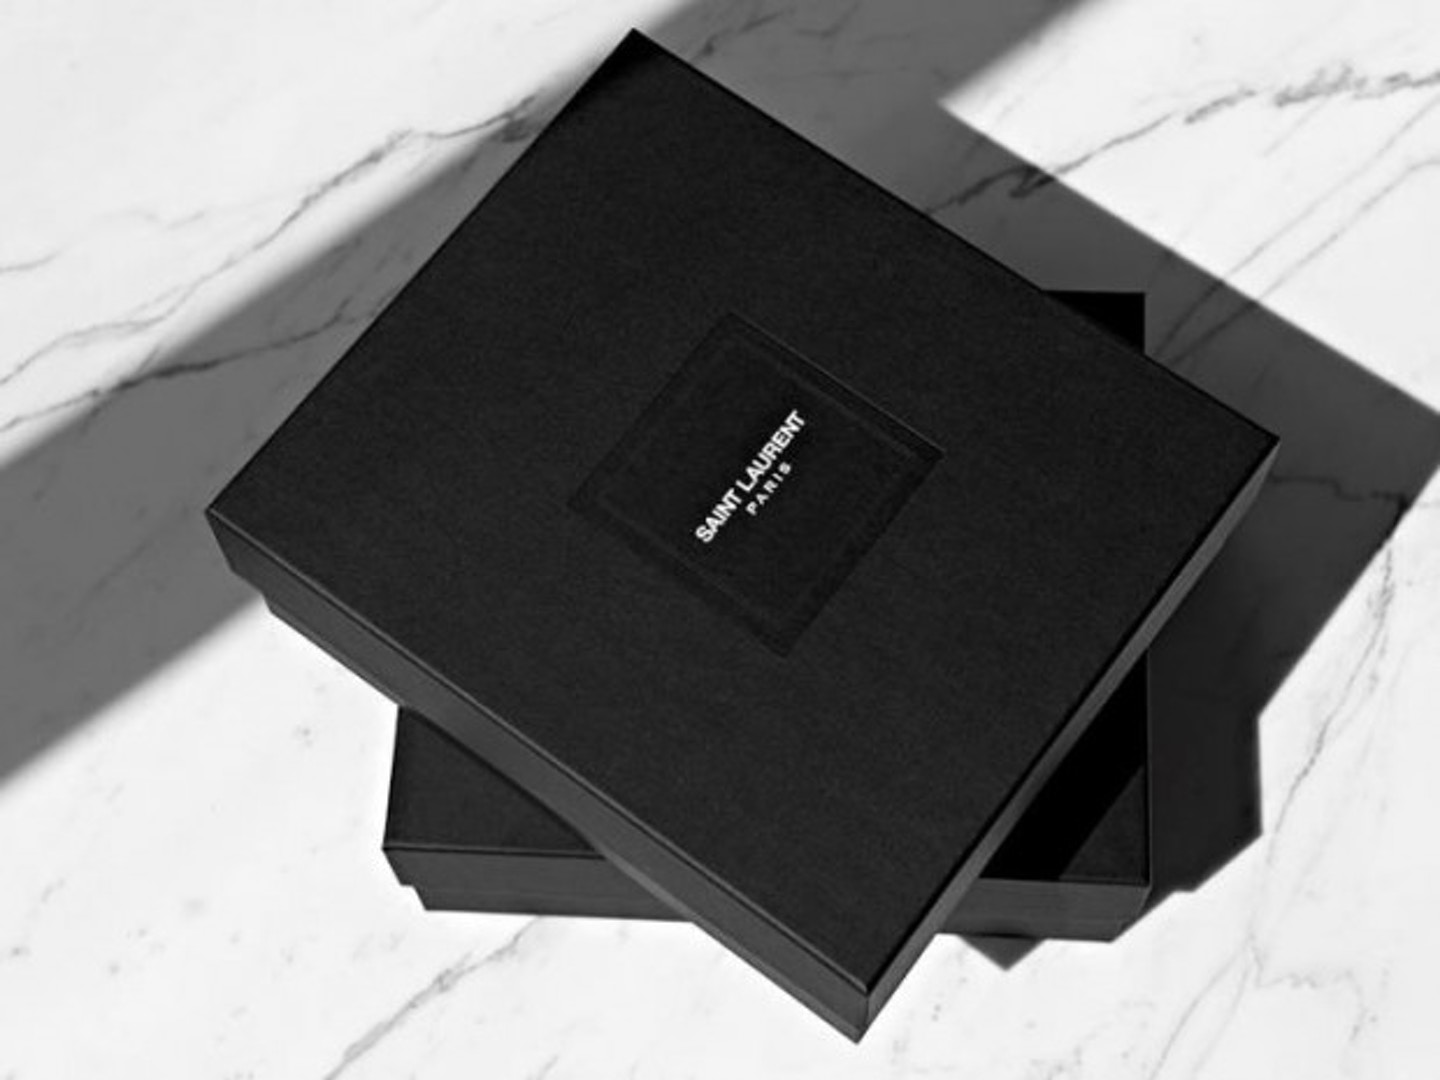 Saint Laurent Paris – Unveiled